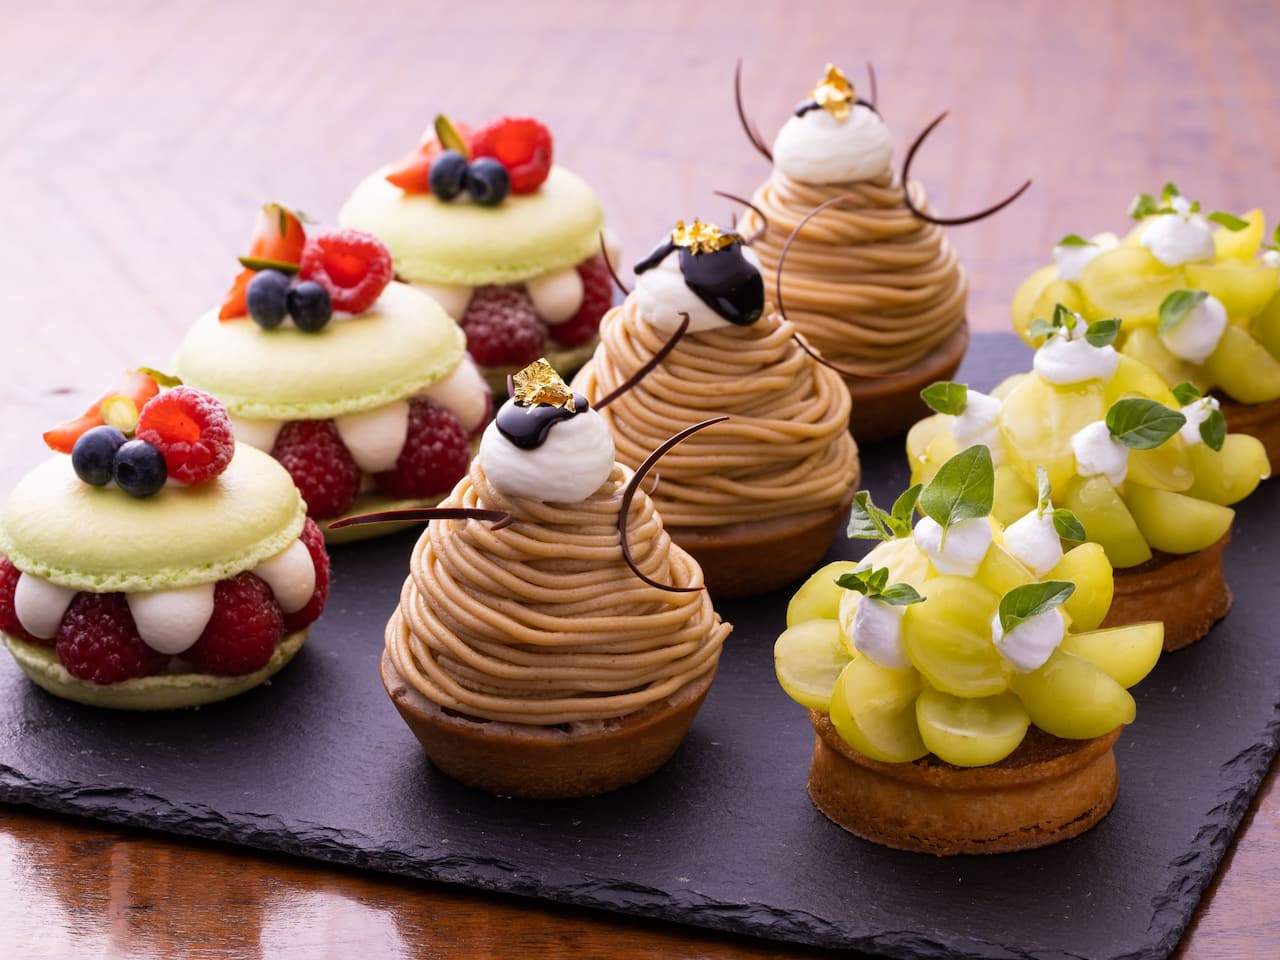 Pastry Boutique